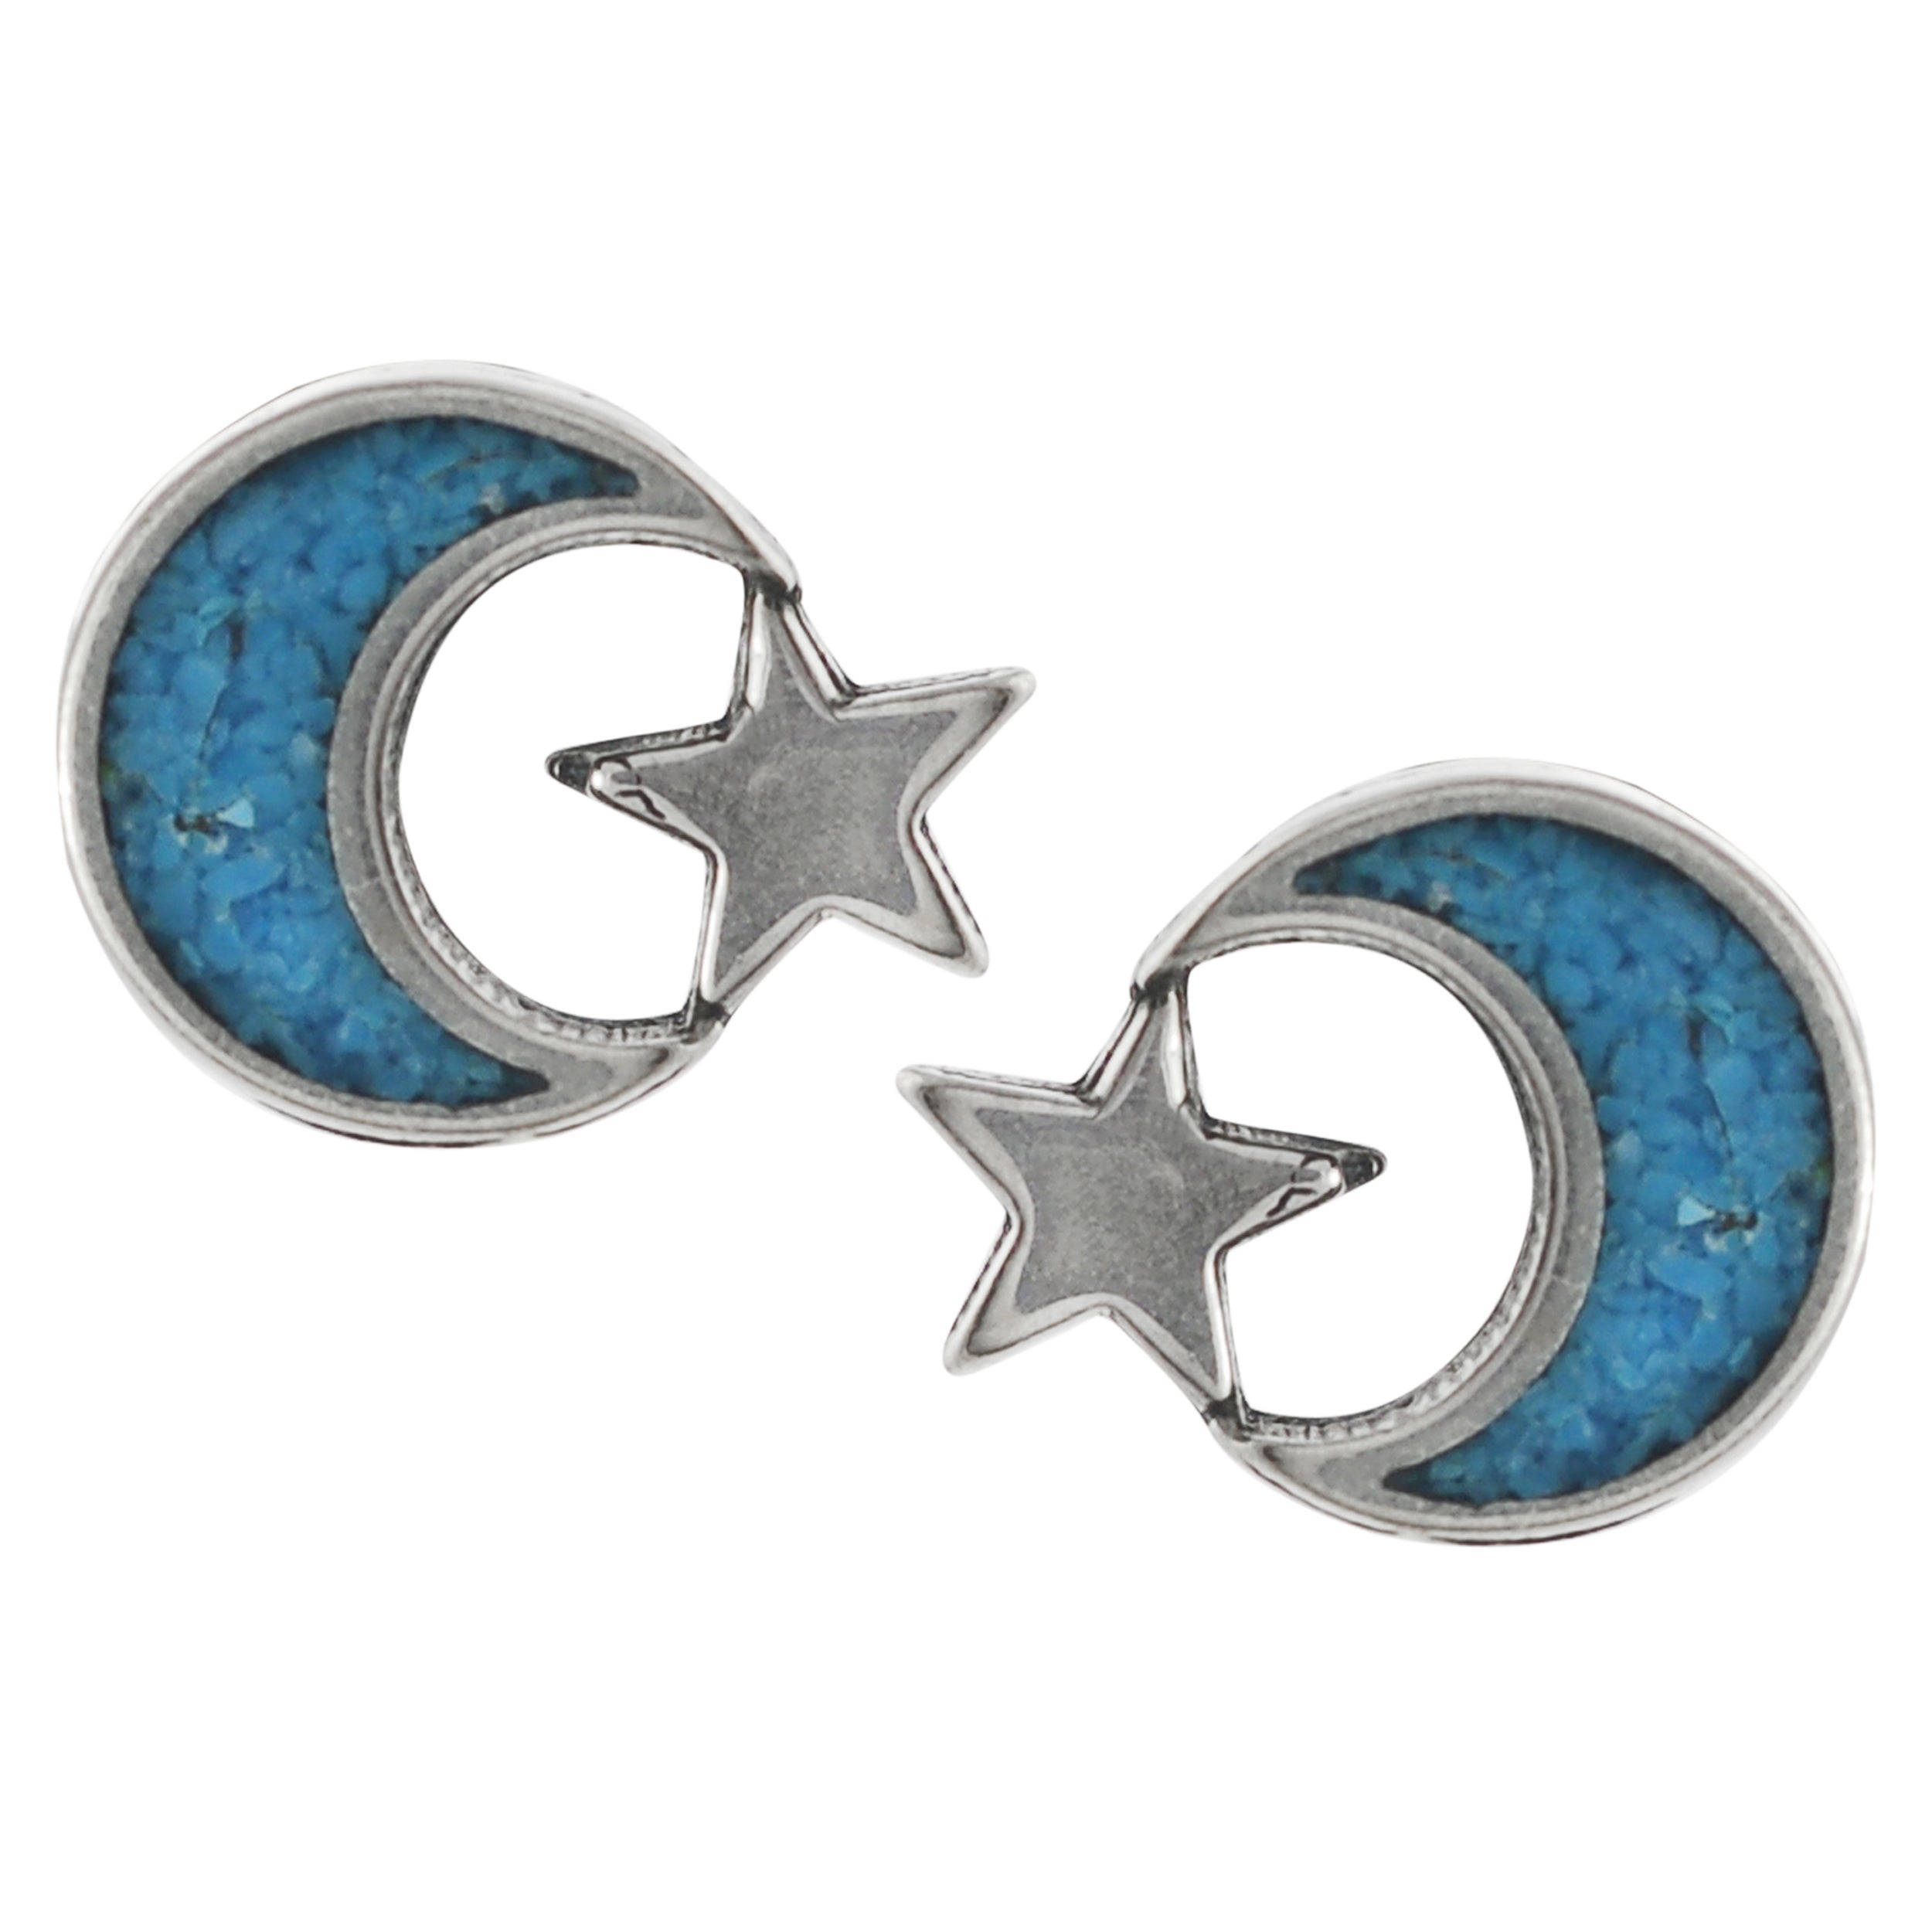 Journee Collection Sterling Silver Genuine Turquoise Moon and Star Stud Earrings